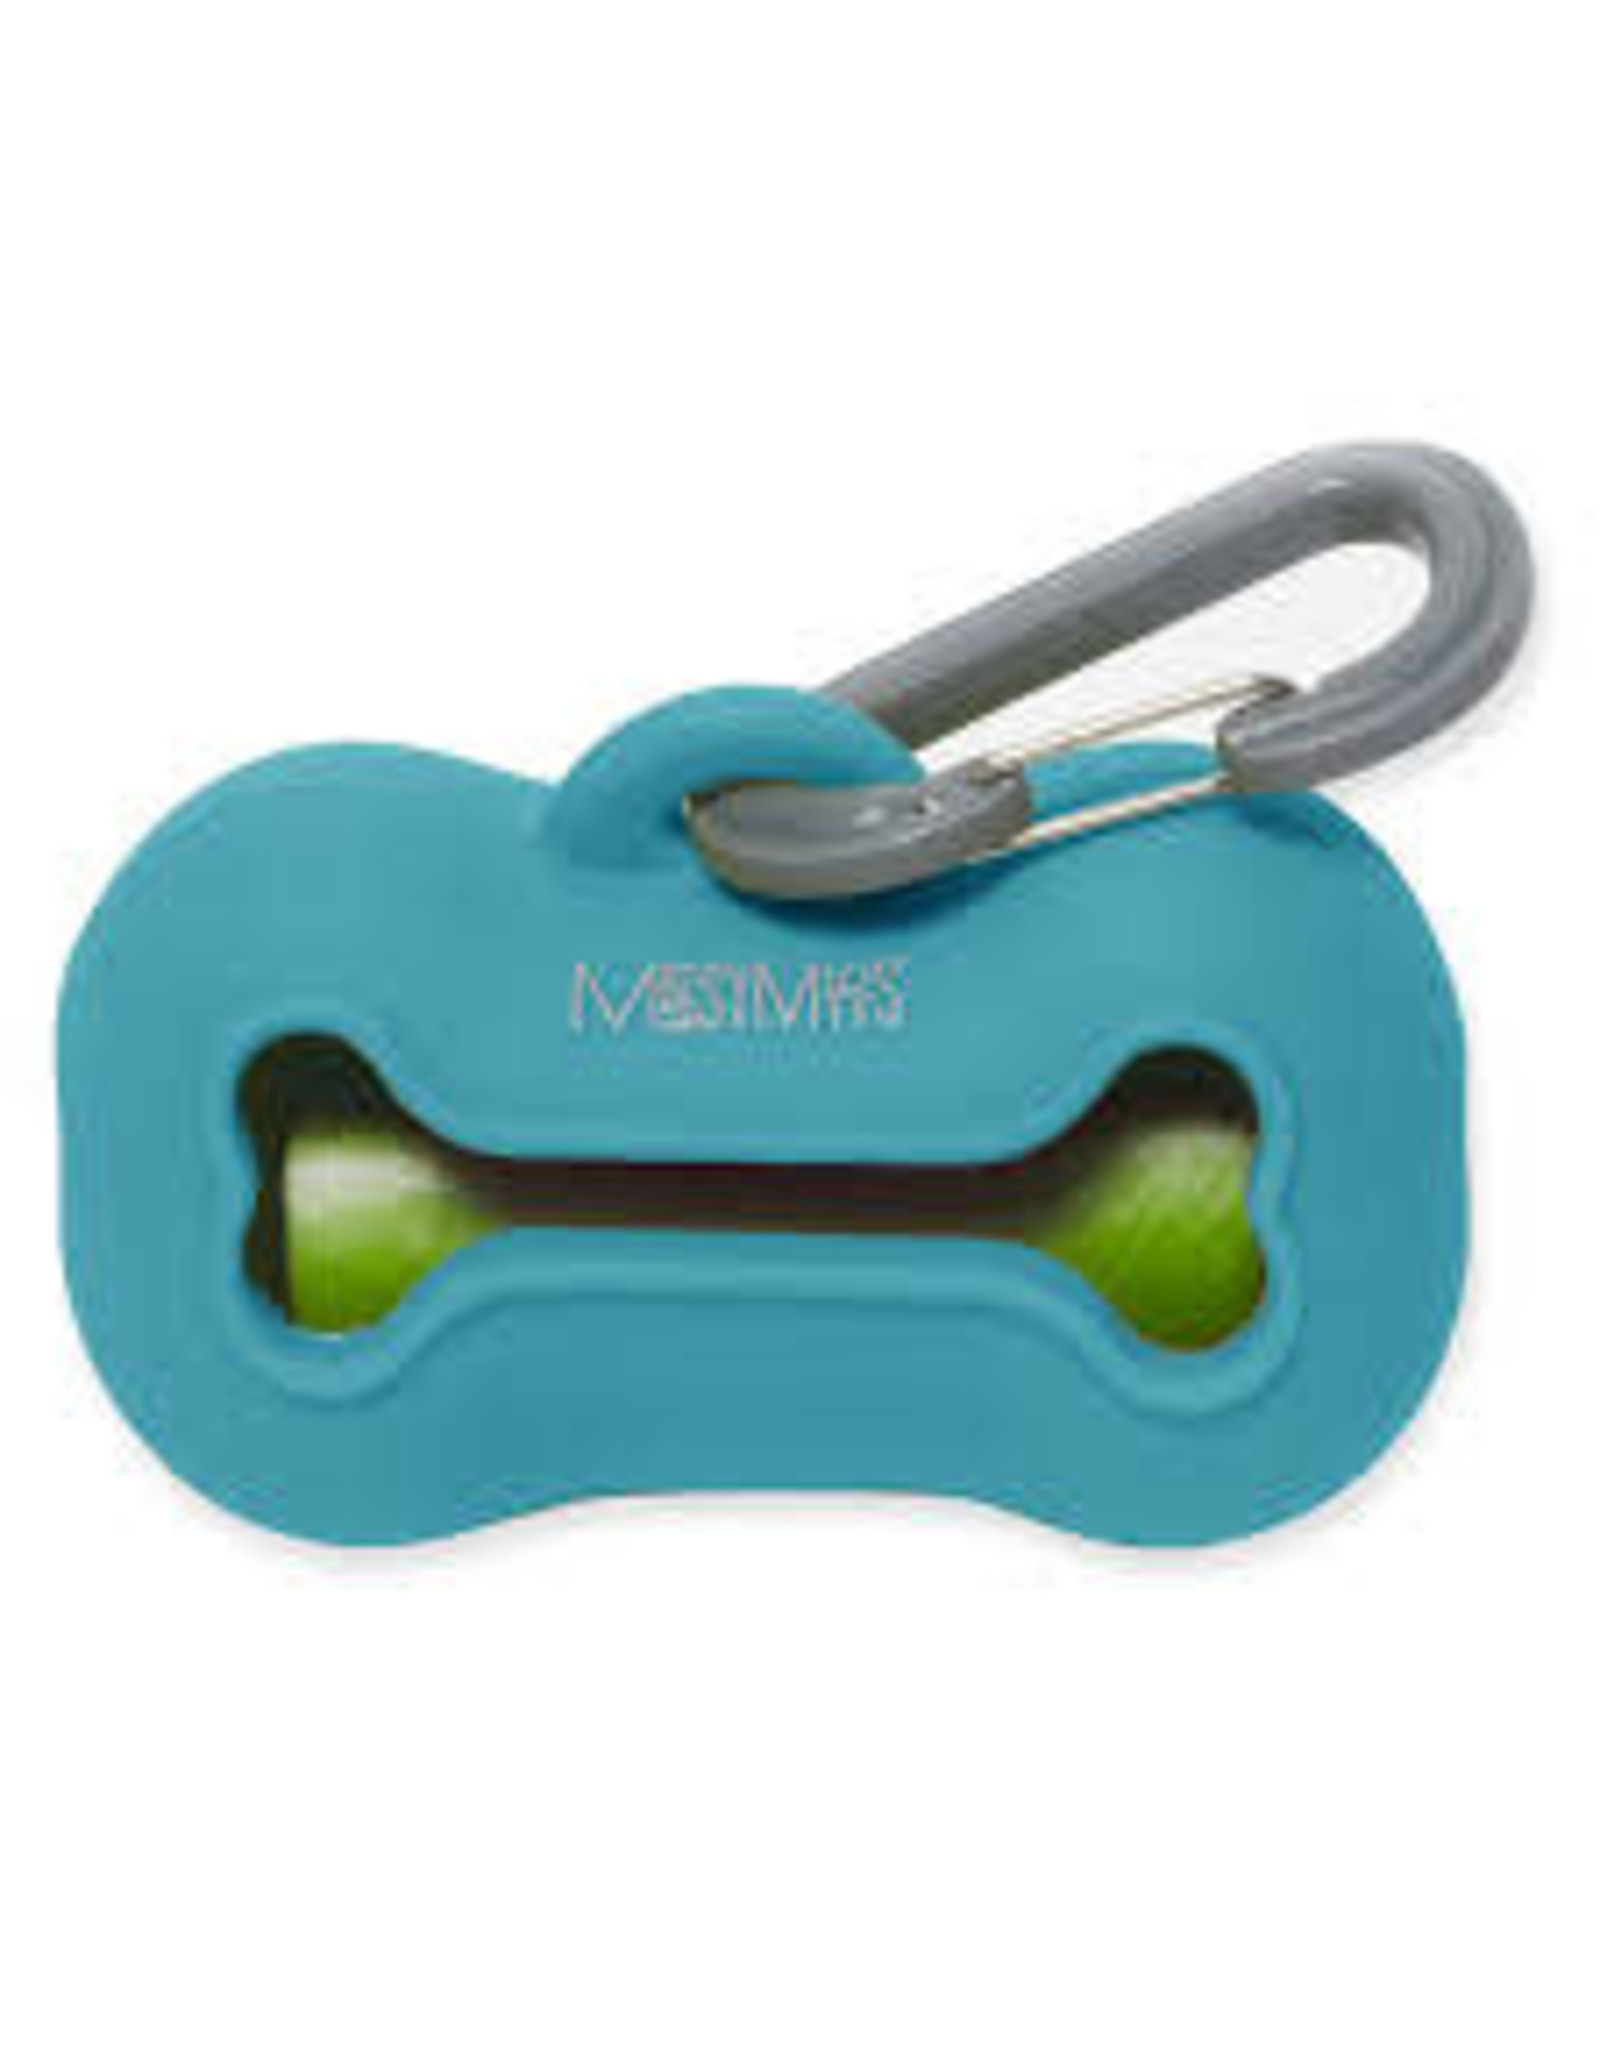 Messy Mutts Messy Mutt Waste Bag Holder Blue